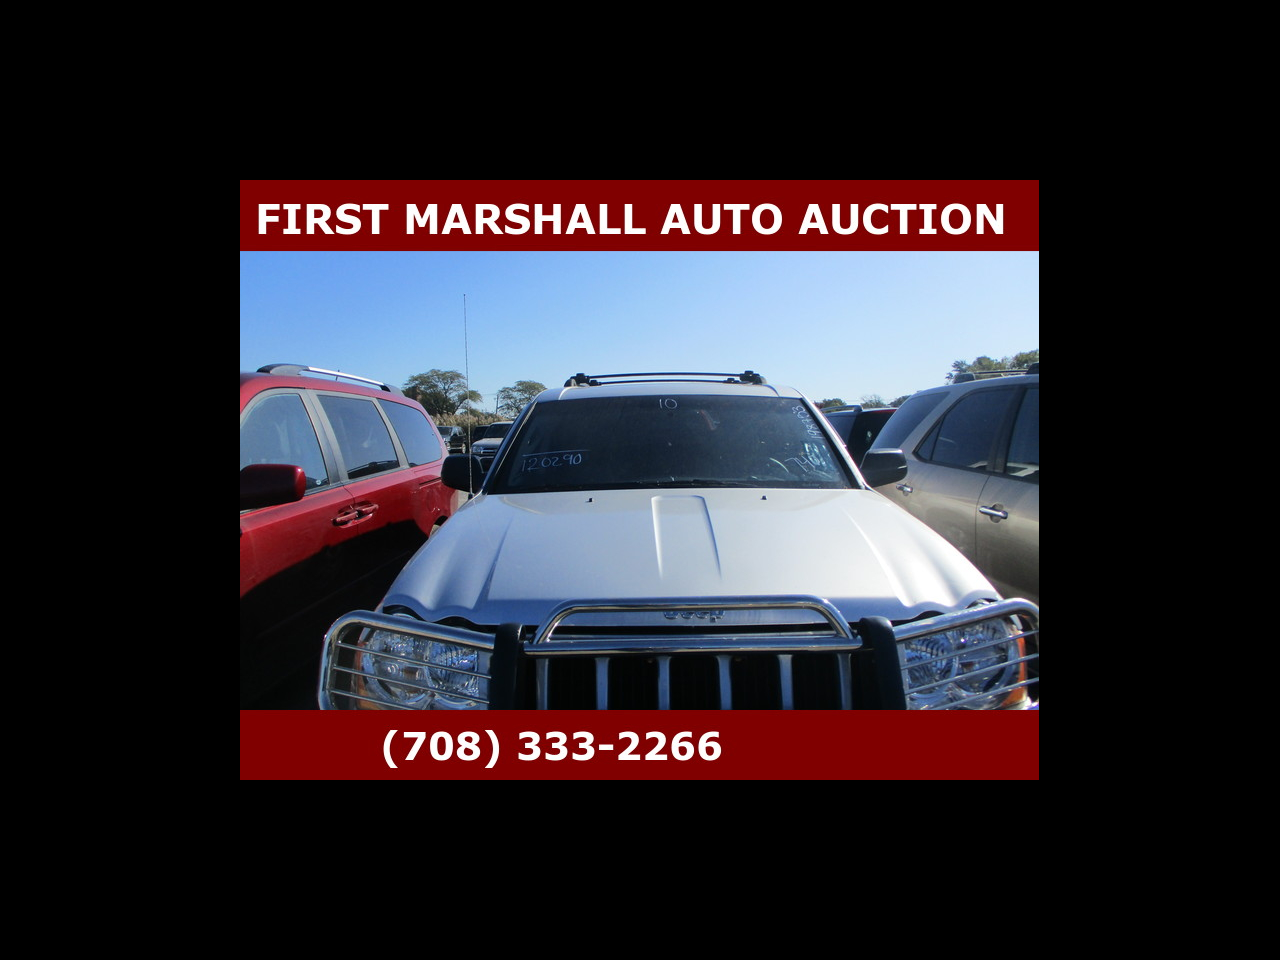 Used Car Auctions Near Me >> Used Cars Harvey Il Used Cars Trucks Il First Marshall